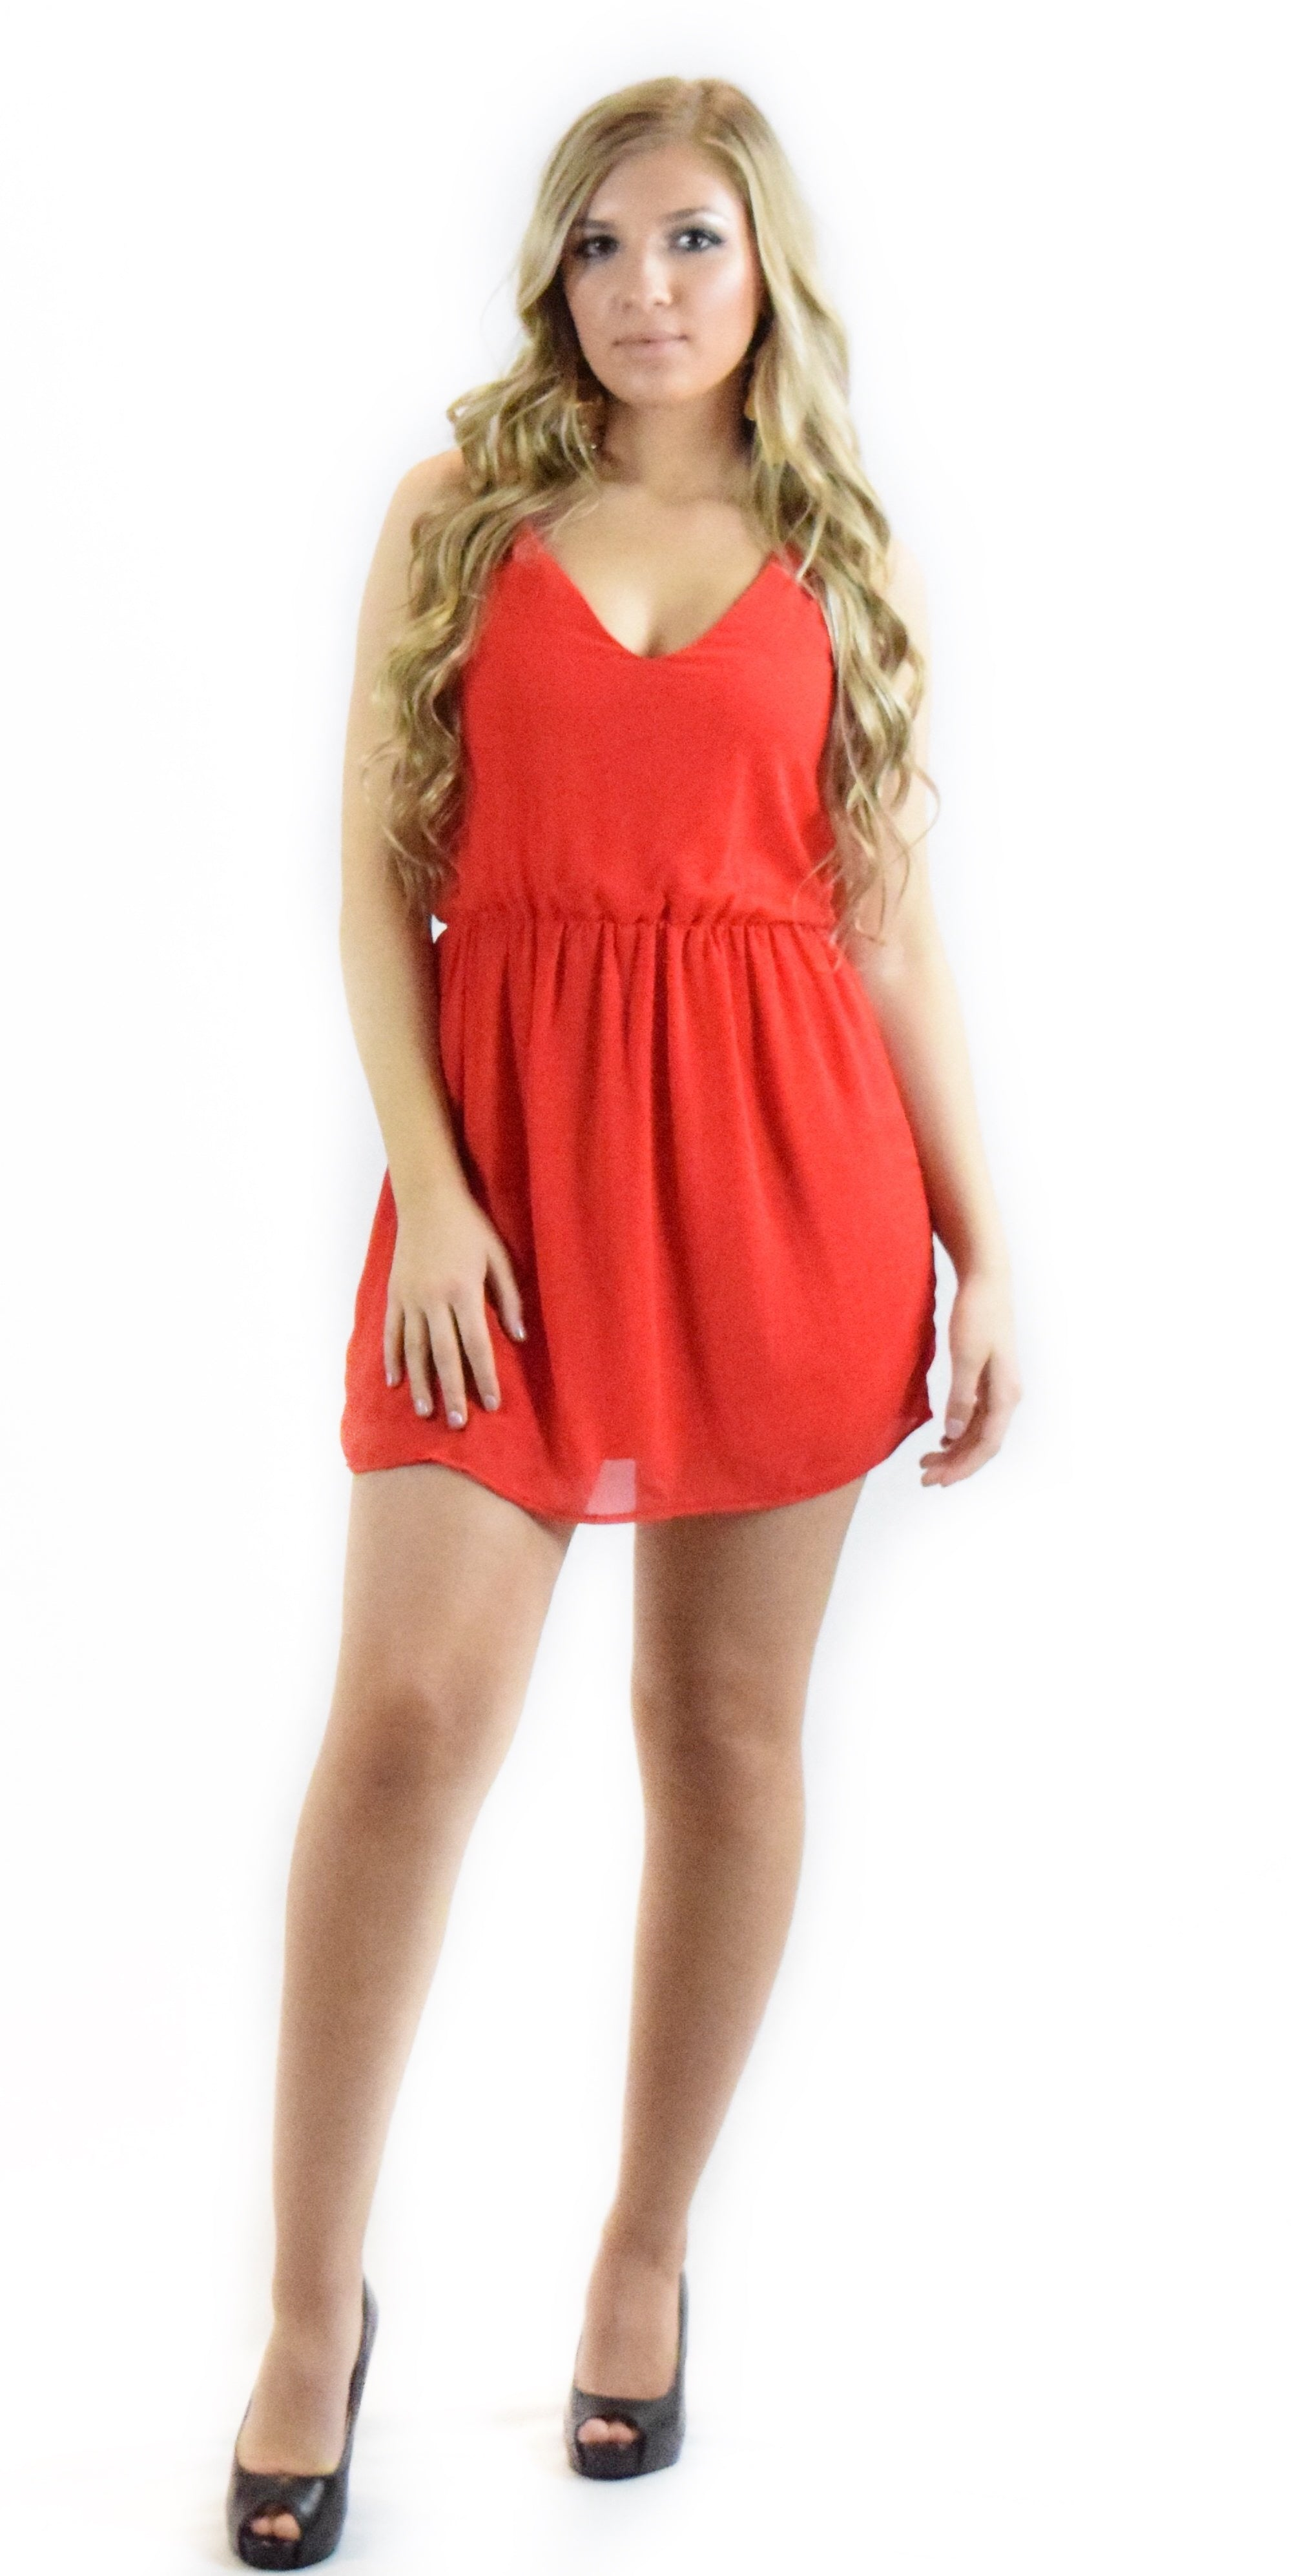 red chiffon dress summer cute flirty vacation comfortable fashion clothing woman trending style